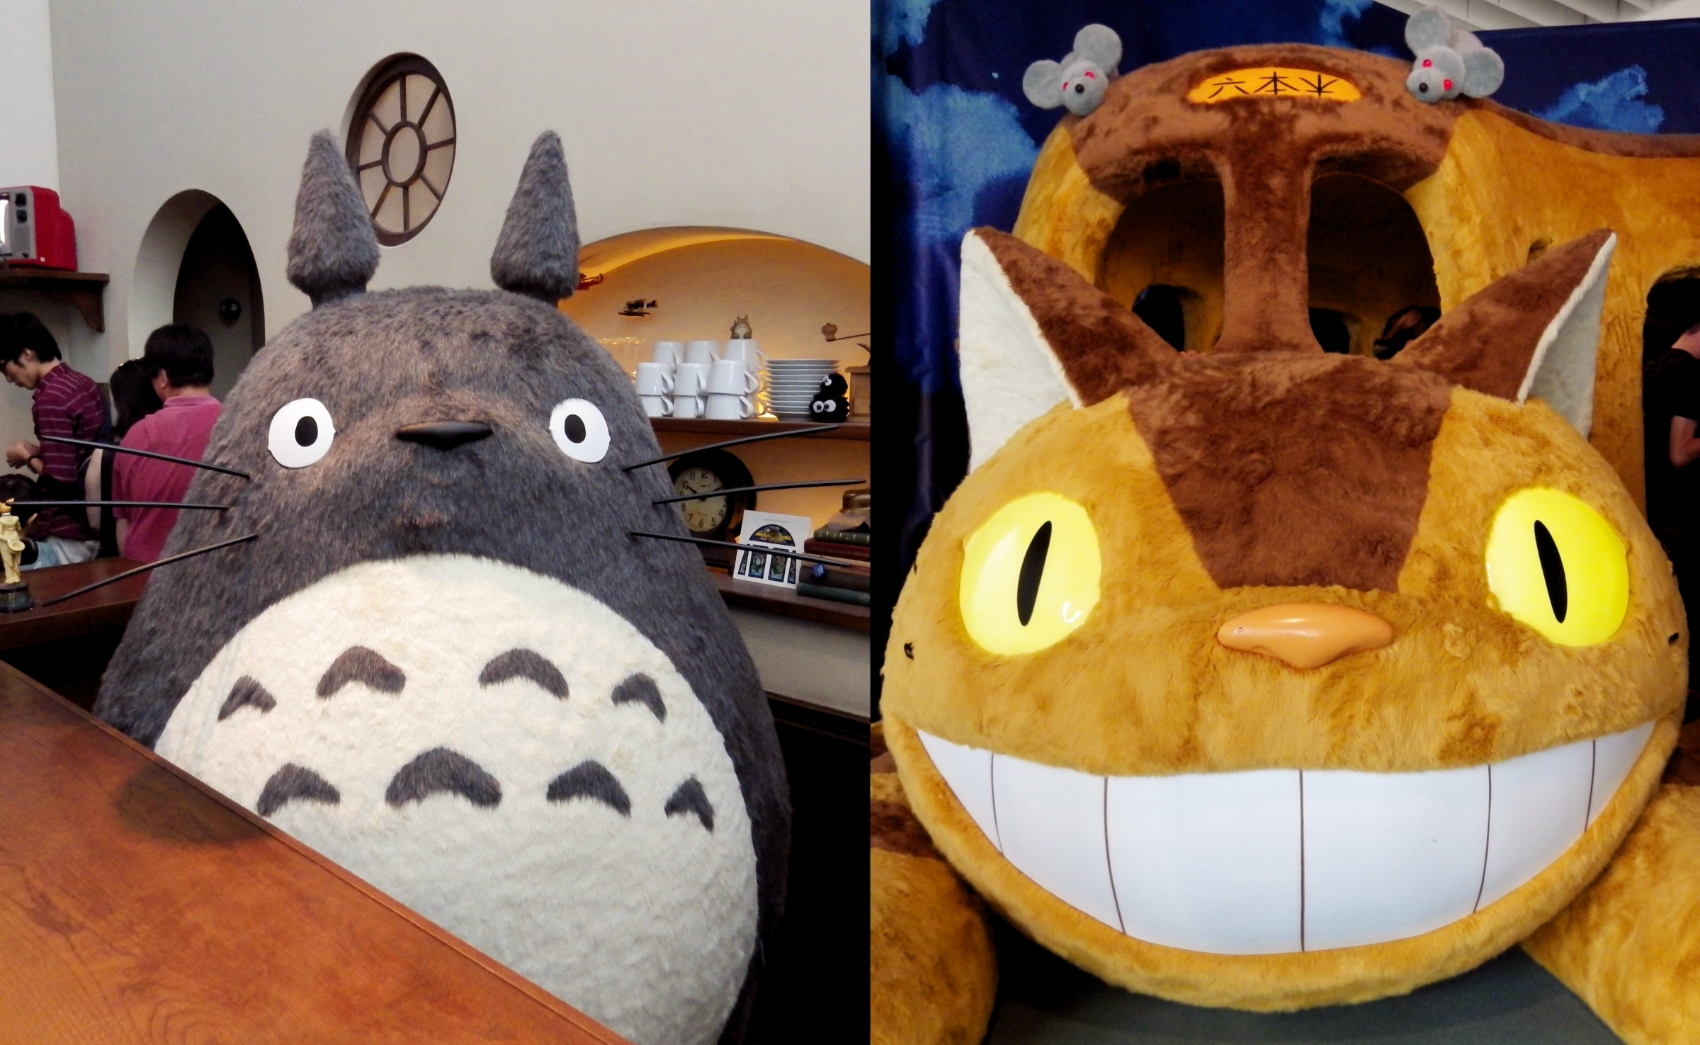 Totoro and Catbus displays at the Ghibli exhibition in Roppongi Hills, Tokyo, 2016.